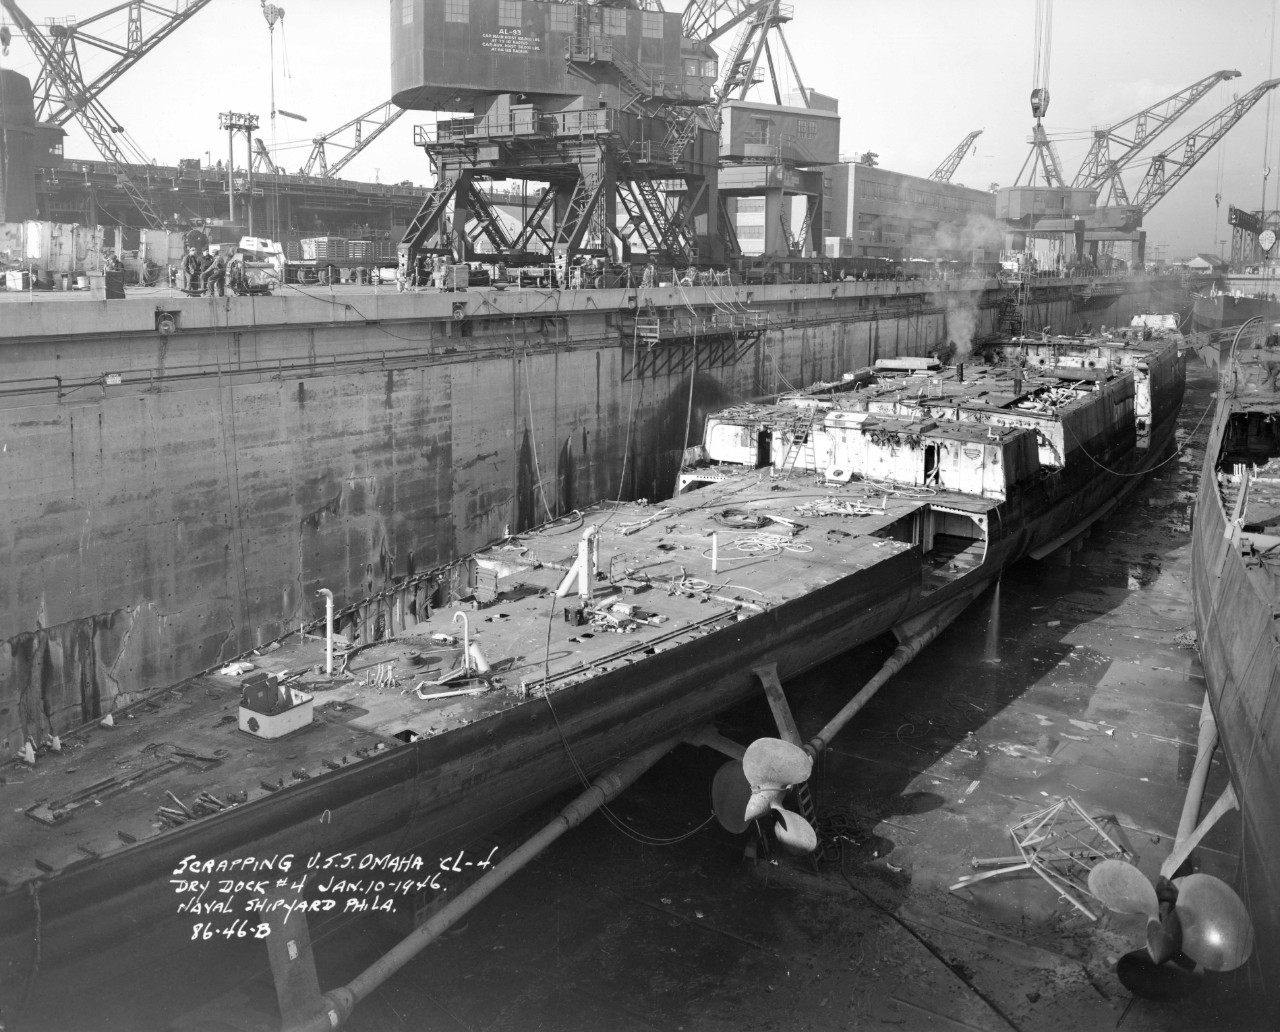 Scrapping ex-Omaha proceeds at the Philadelphia Naval Shipyard, 10 January 1946, a process being carried out on two of her sisters (R) in the same dry dock. (Ships History Files, Naval History and Heritage Command, History and Archives Division)